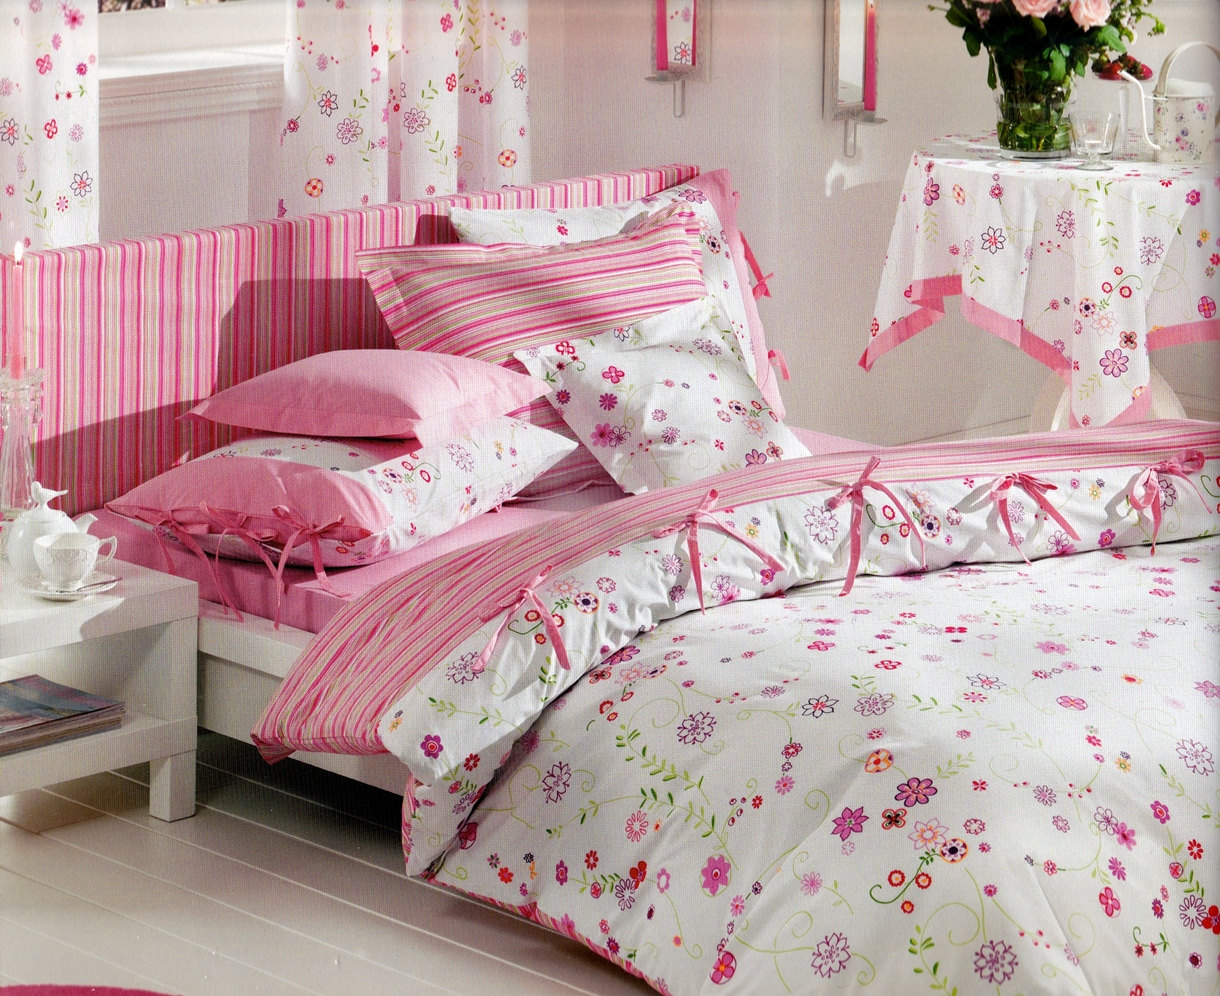 Floral bedding tumblr - Fashionable Bedding Sets For Your Sweet Dream How Ornament My Eden